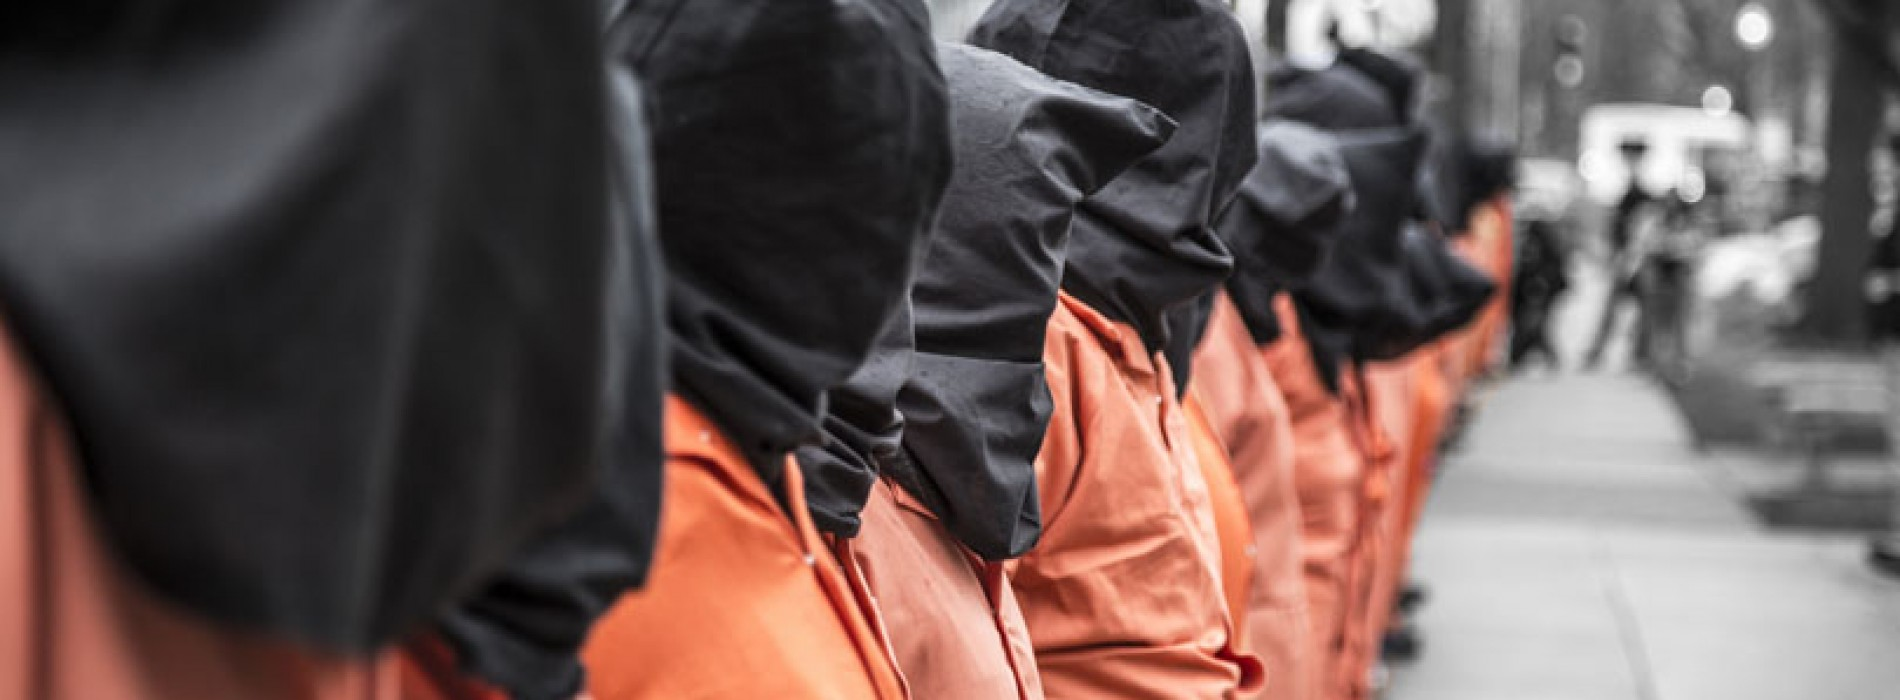 Amendment to outlaw torture backed by Collins and King passes in Senate